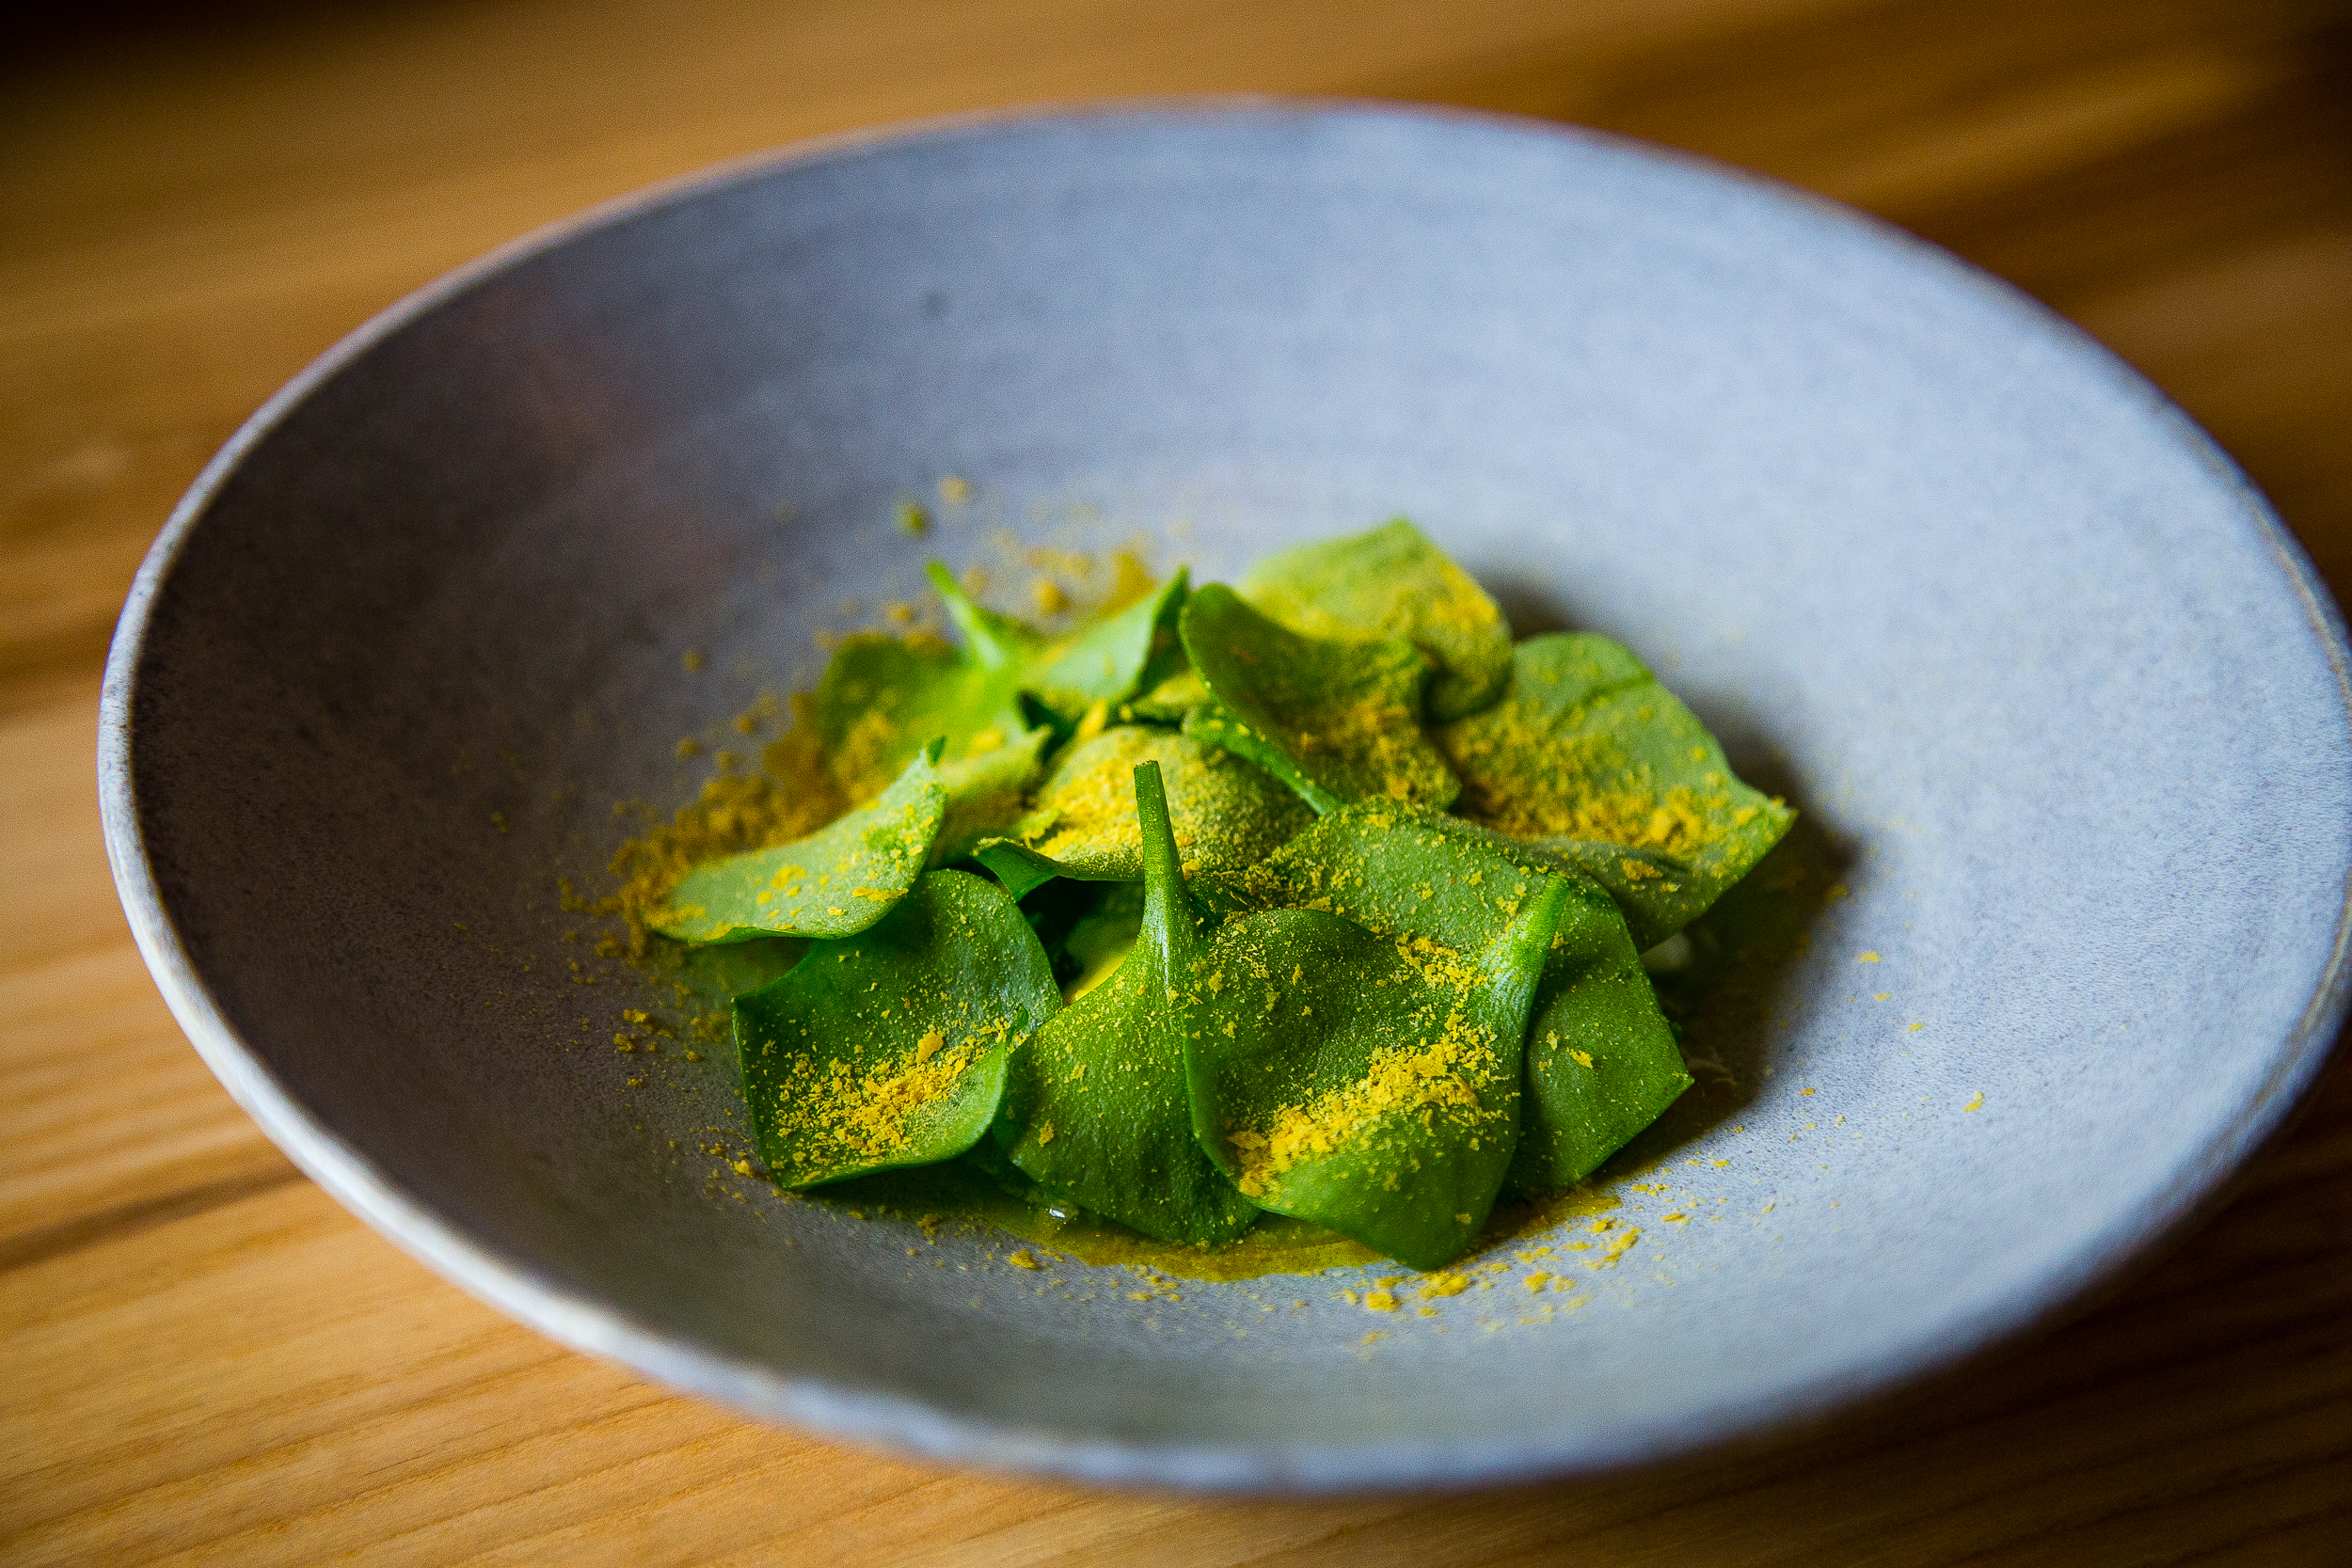 Asparagus, cheese, lemon, Miner's lettuce, nutritional yeast